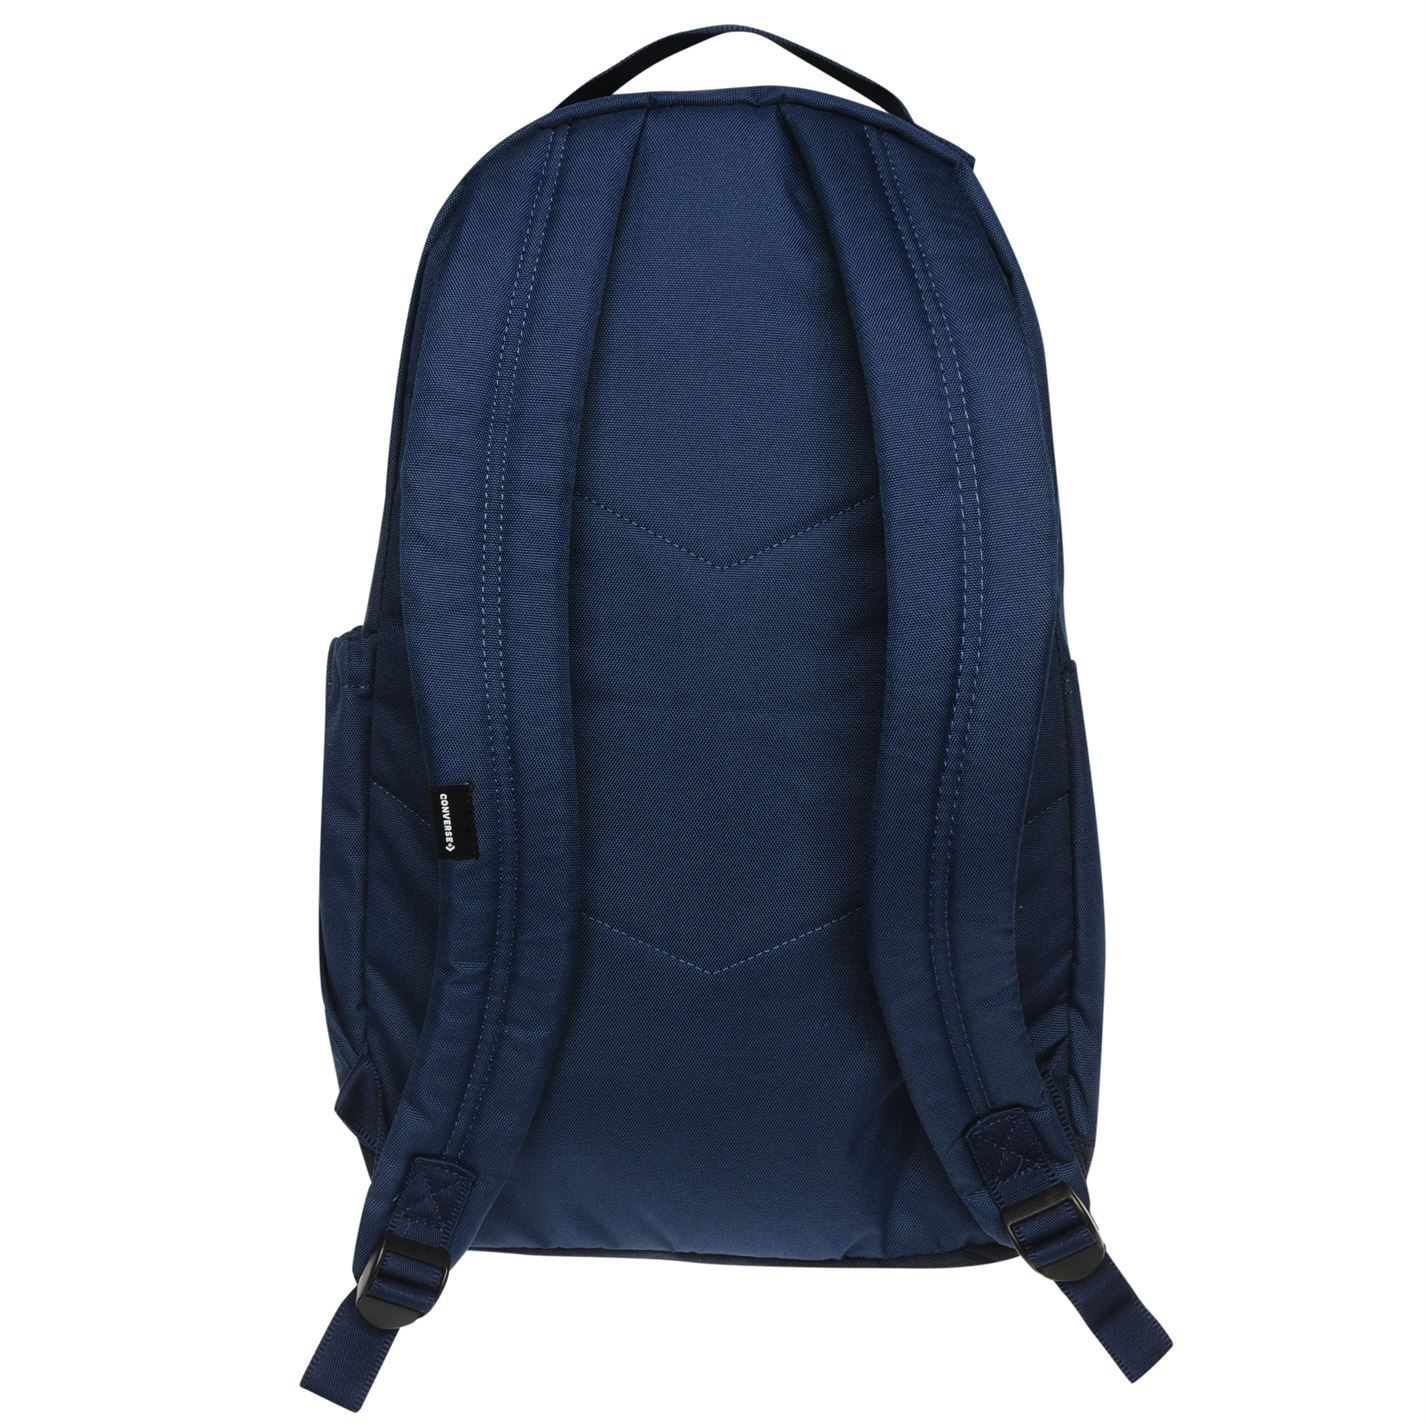 db5f518dc1 ... Converse Go Backpack Navy Rucksack Daypack Bag